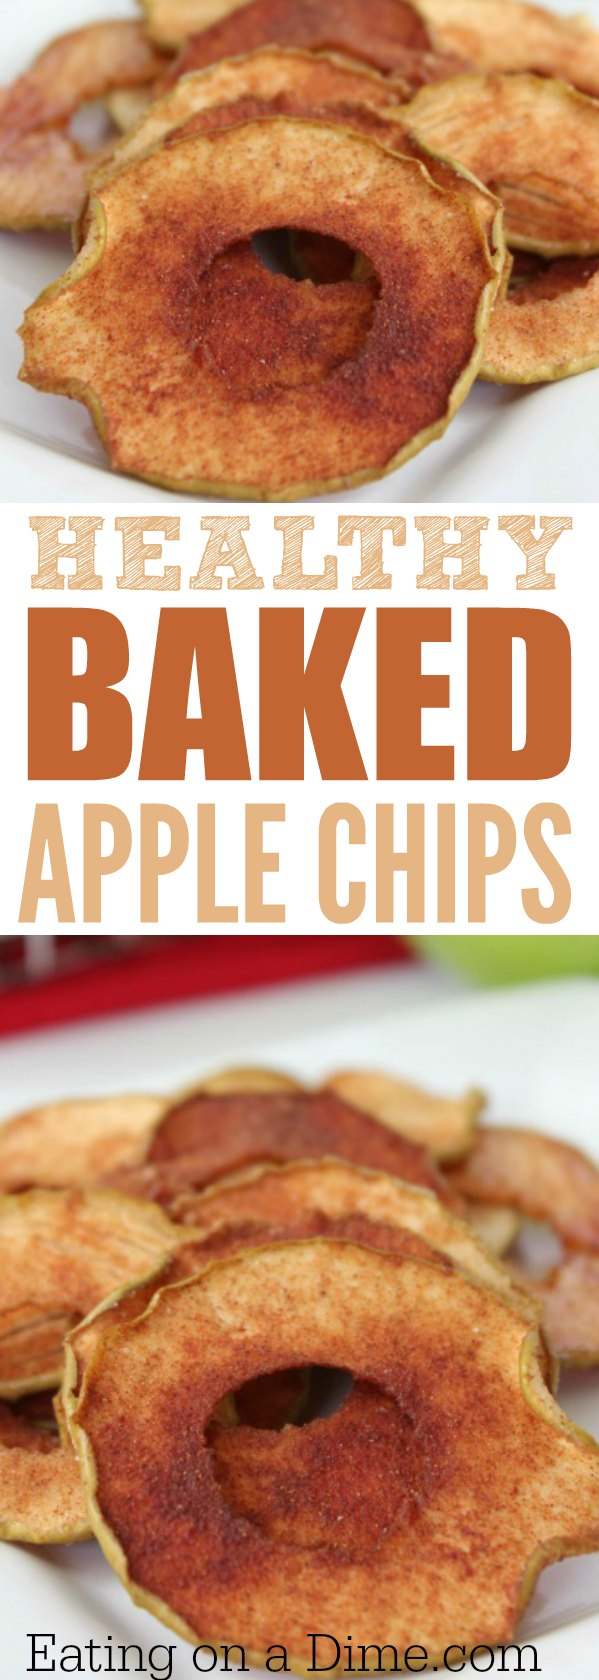 How to make apple chips in the oven. Are apple chips healthy? These baked apple chips are so easy to make, healthy and taste great. You are going to love these easy baked apple slices.